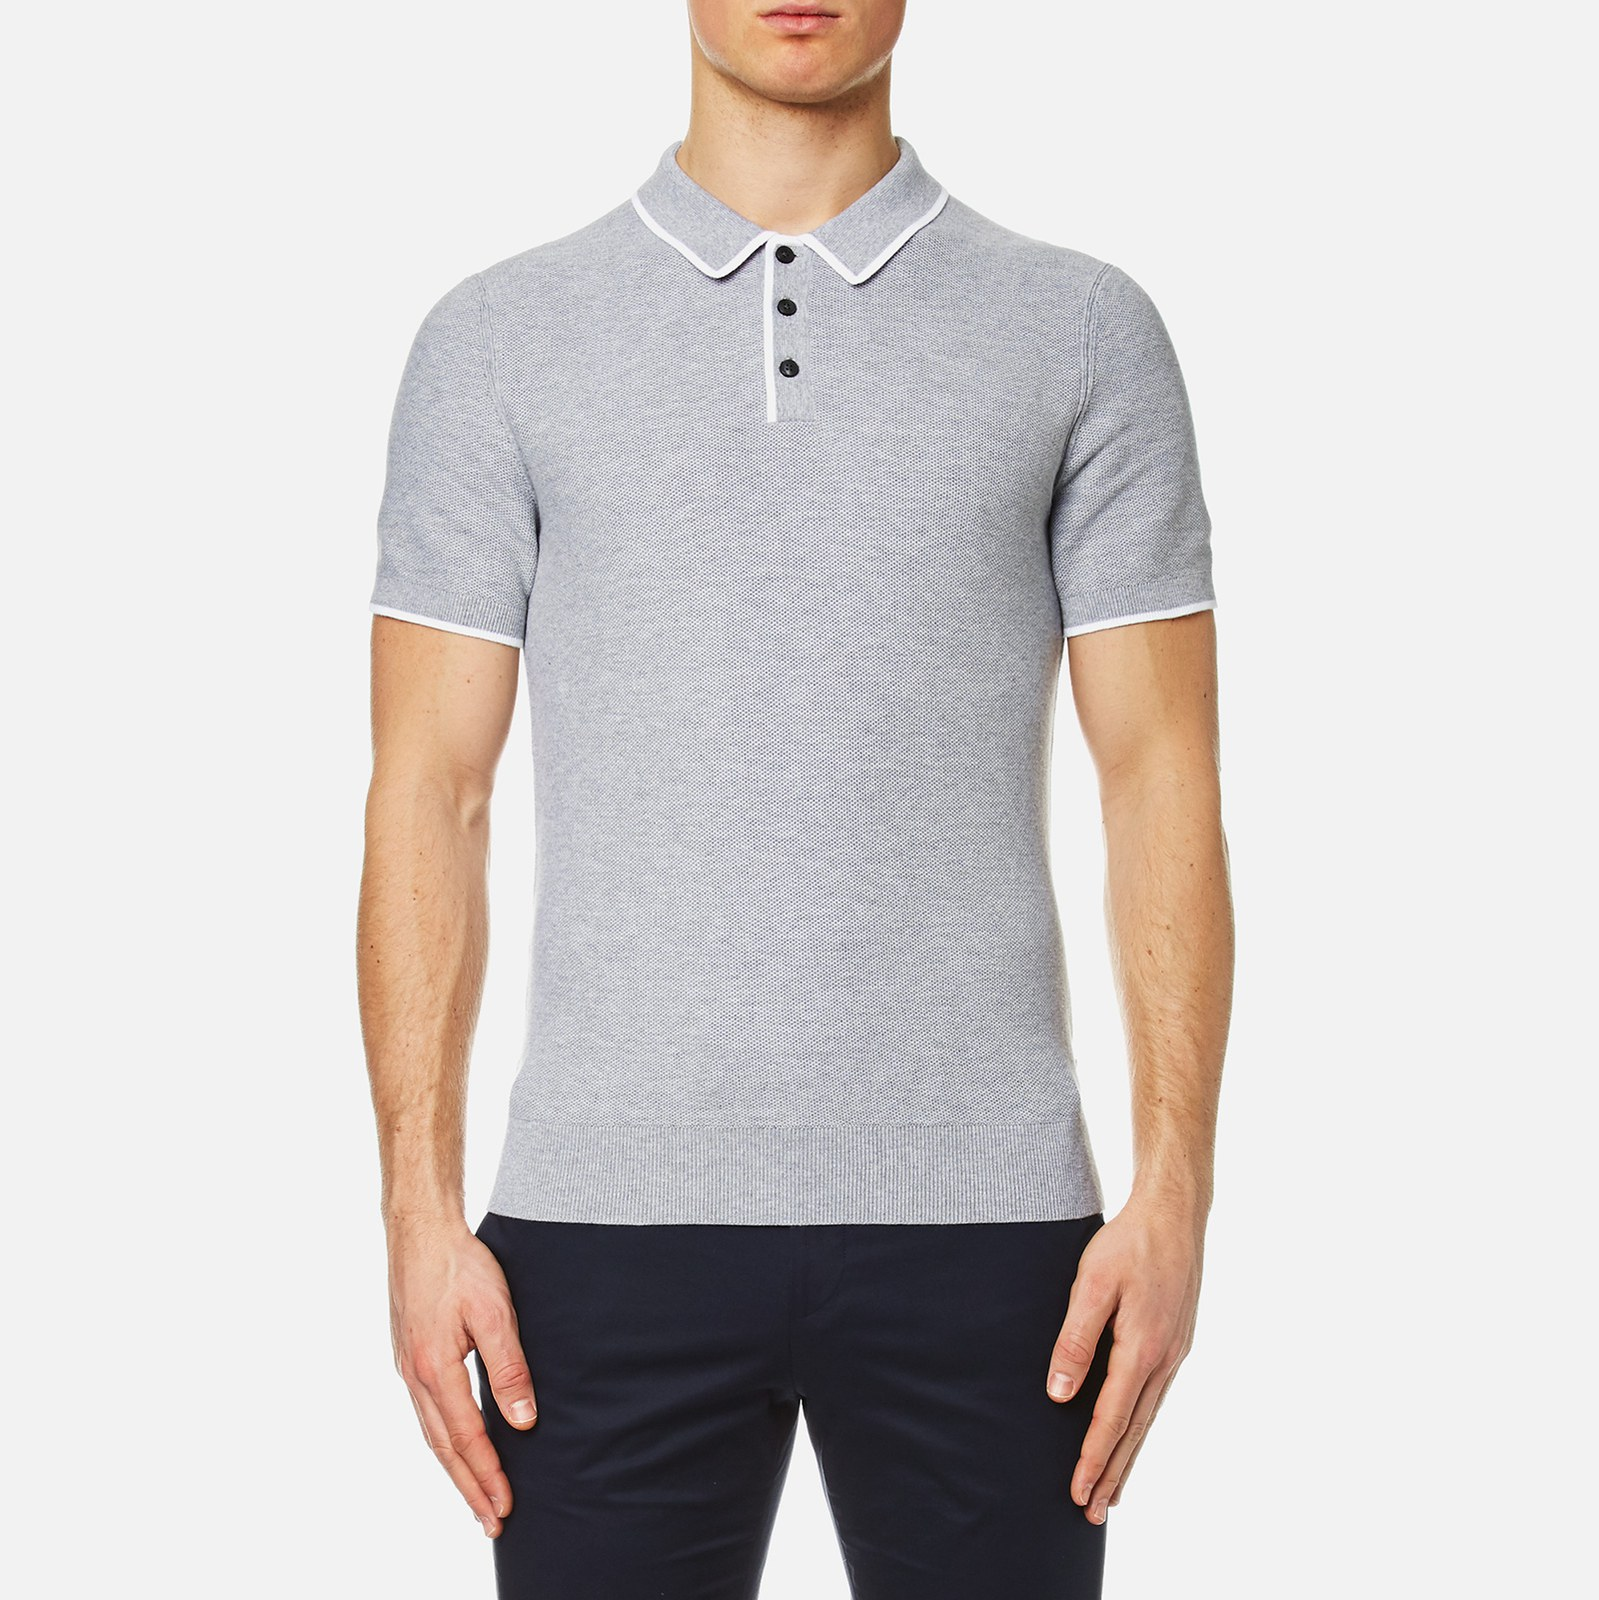 2cdfd066 Michael Kors Men's Tuck Stitch Tip Polo Shirt - Heather Grey - Free UK  Delivery over £50